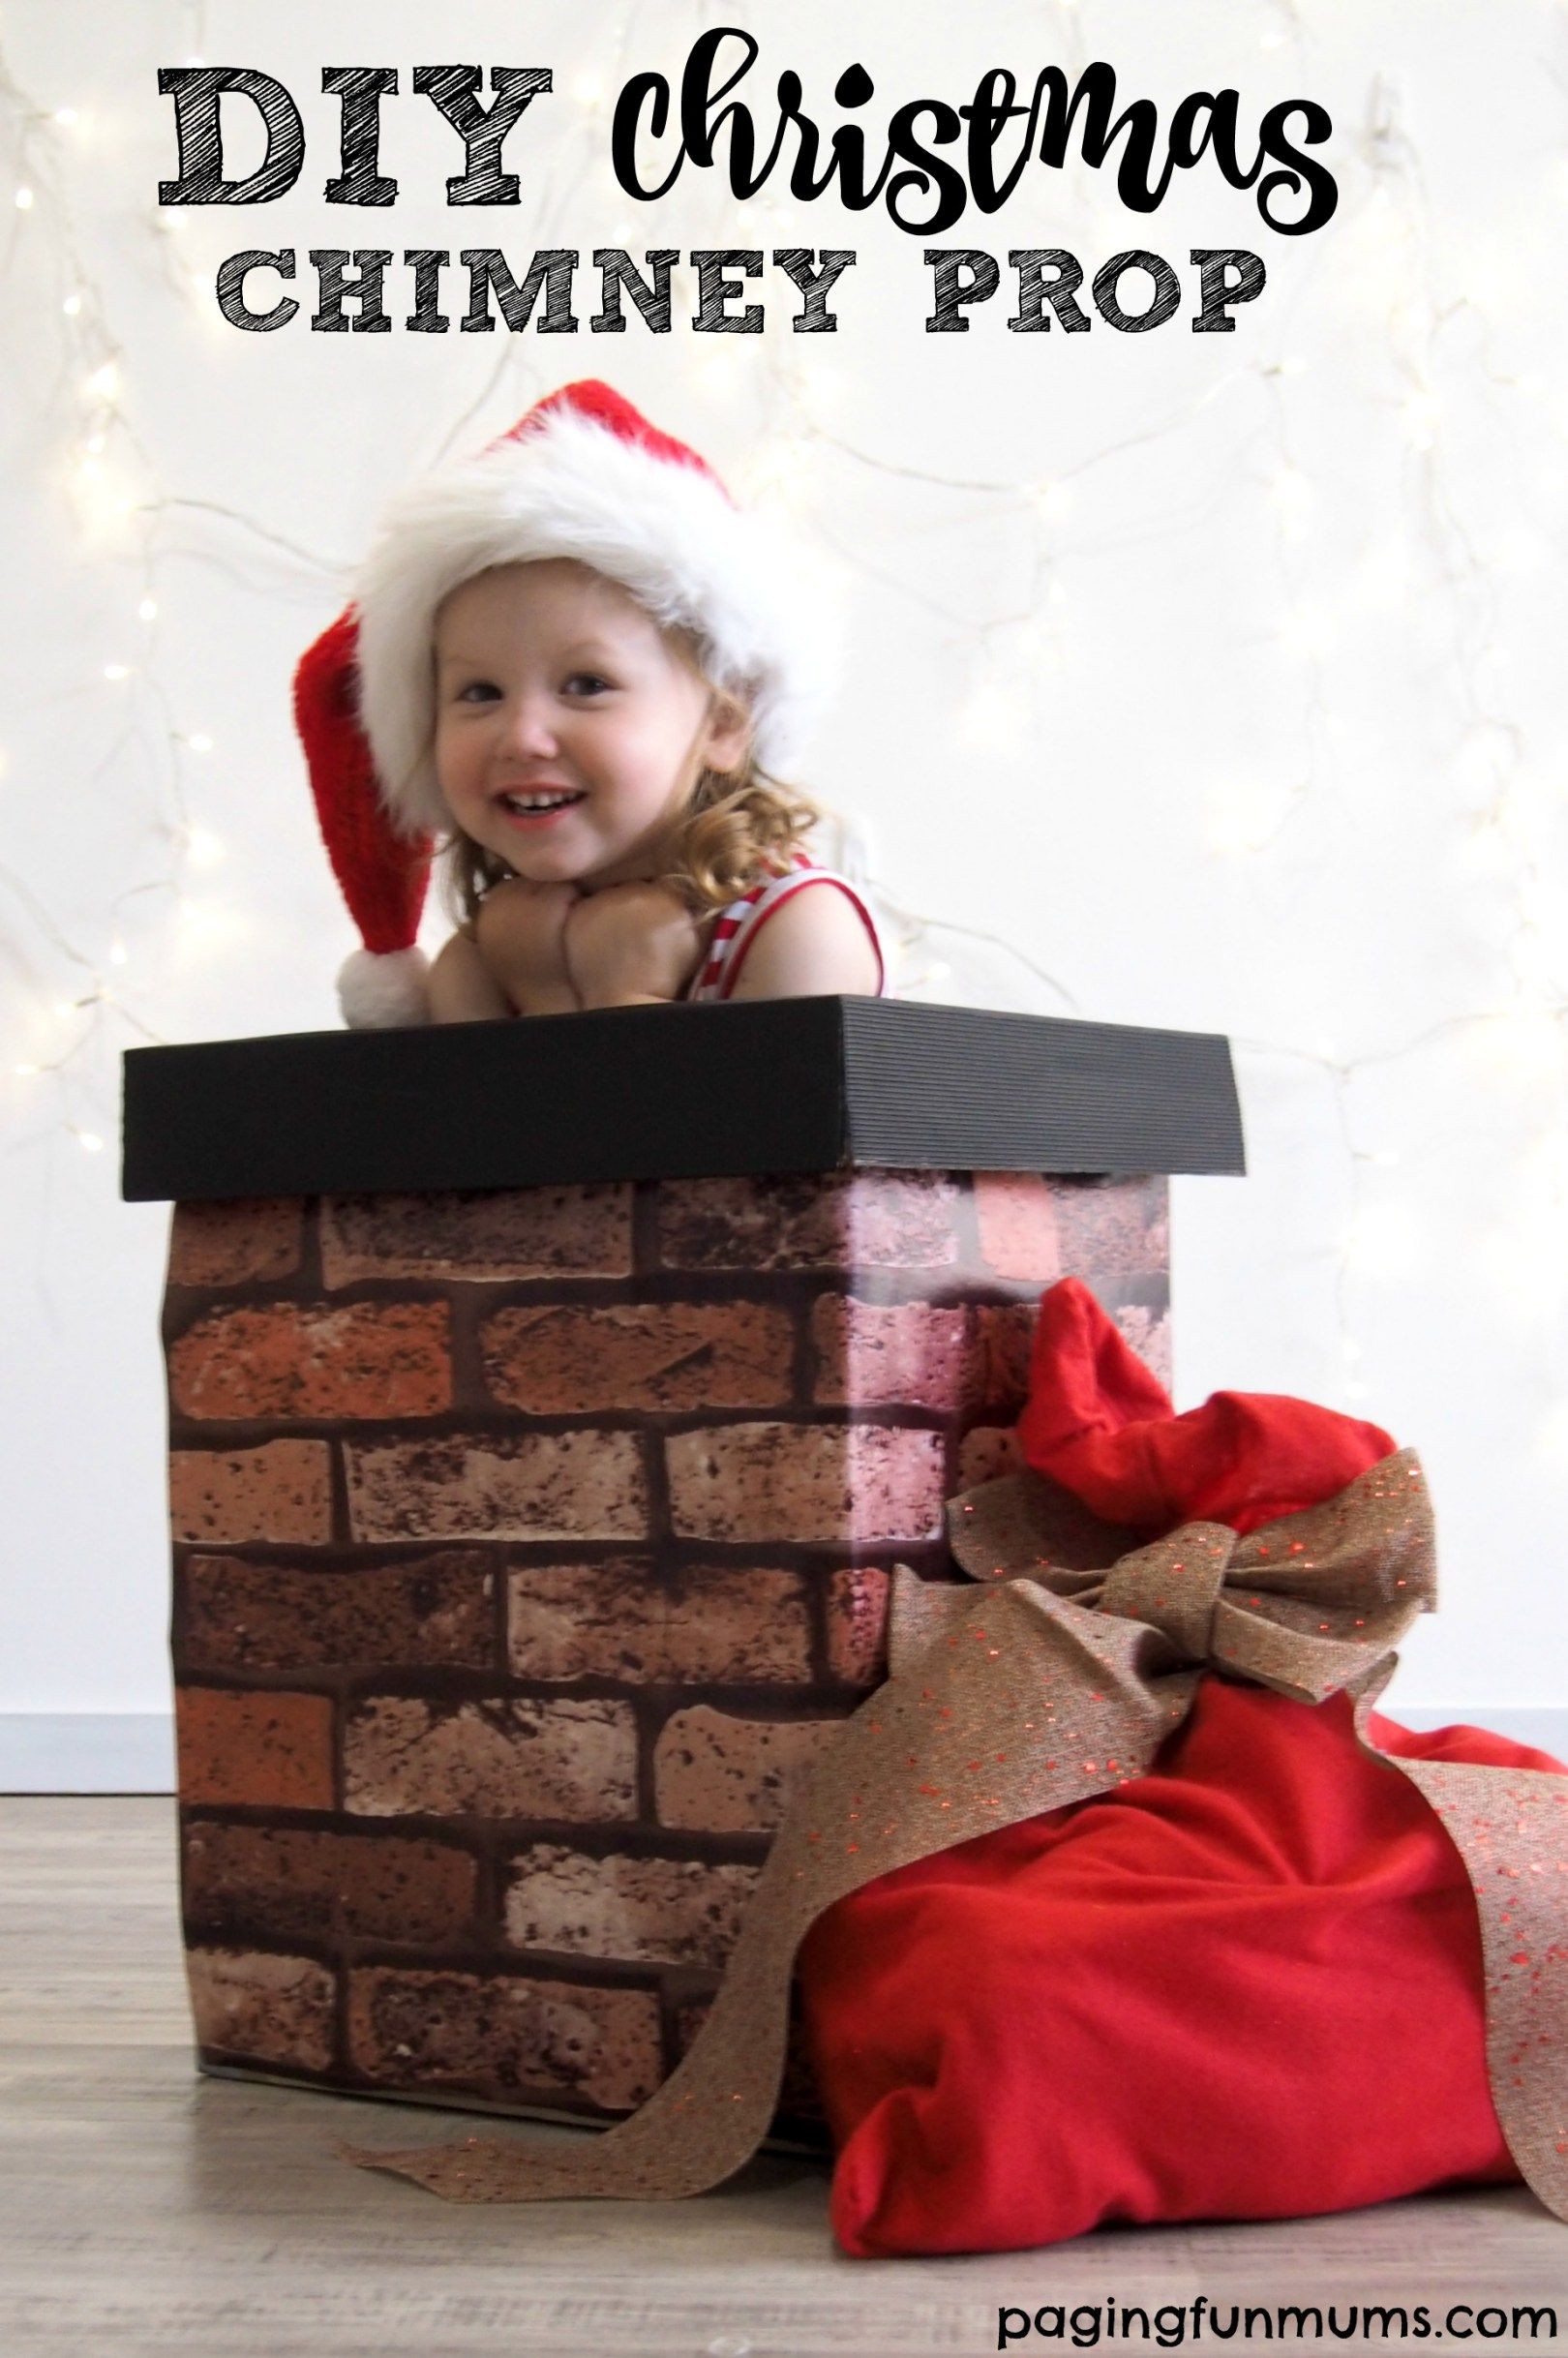 Best ideas about DIY Christmas Photography . Save or Pin How to Capture Magical Christmas Memories at Home Now.